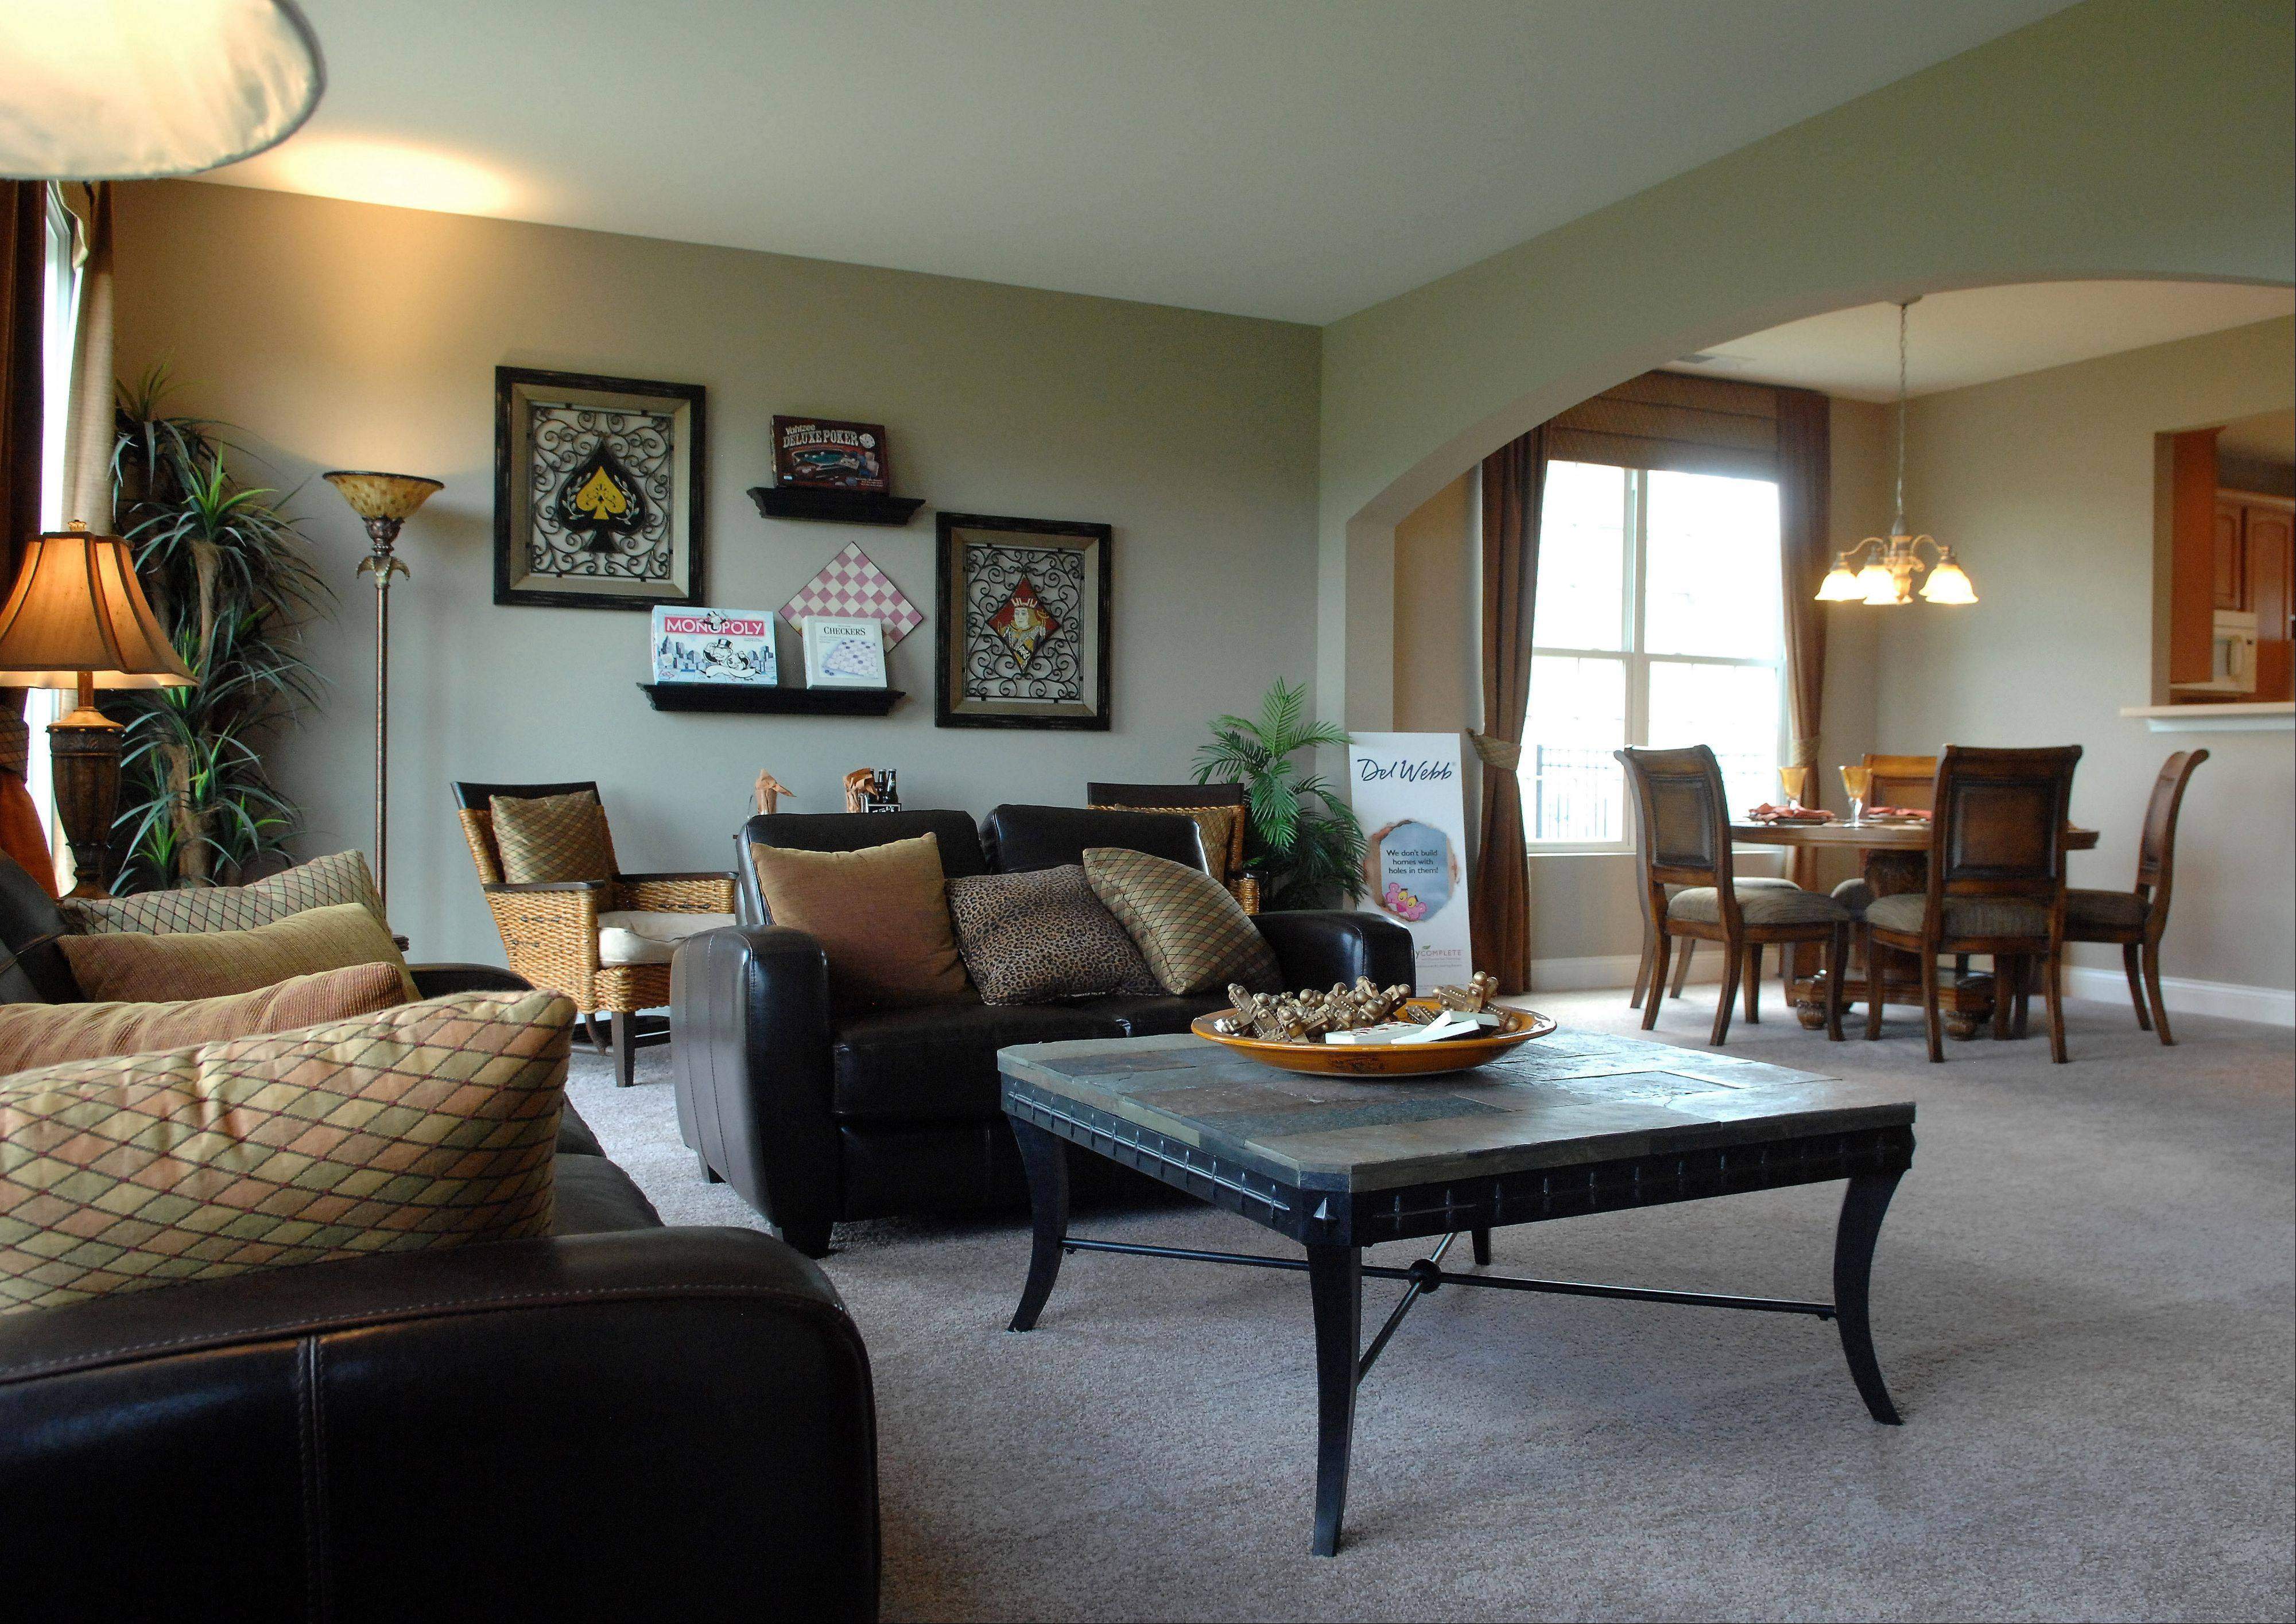 The large living and dining area of the Monroe model, now available in the Lakeshore series at Pulte Homes' Edgewater community in Elgin.